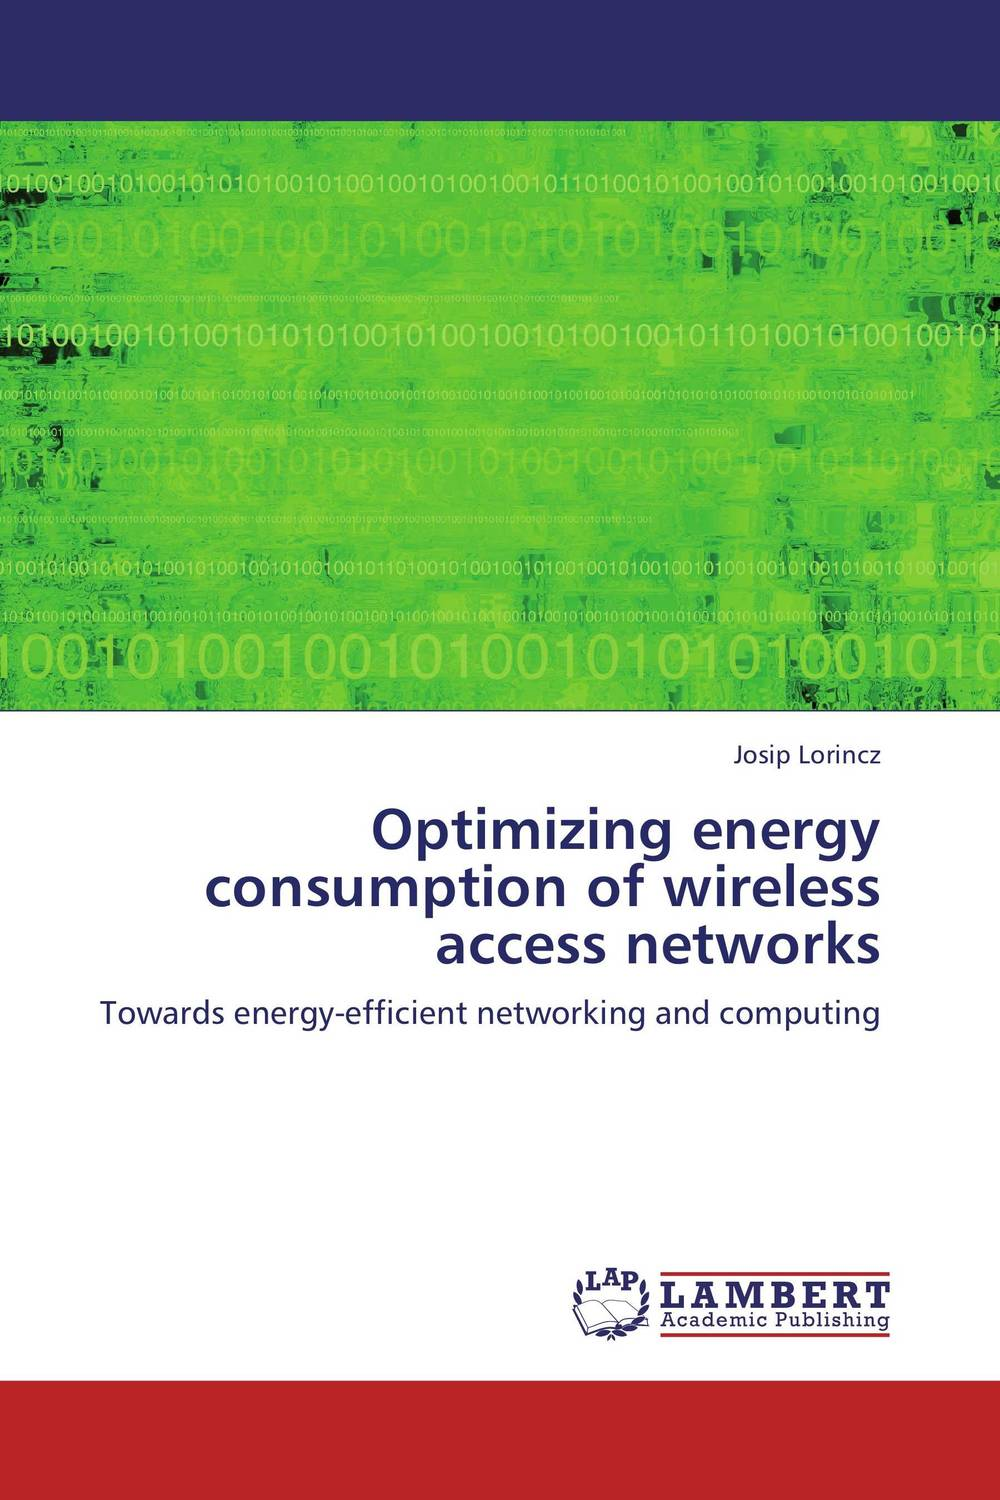 Optimizing energy consumption of wireless access networks p b eregha energy consumption oil price and macroeconomic performance in energy dependent african countries